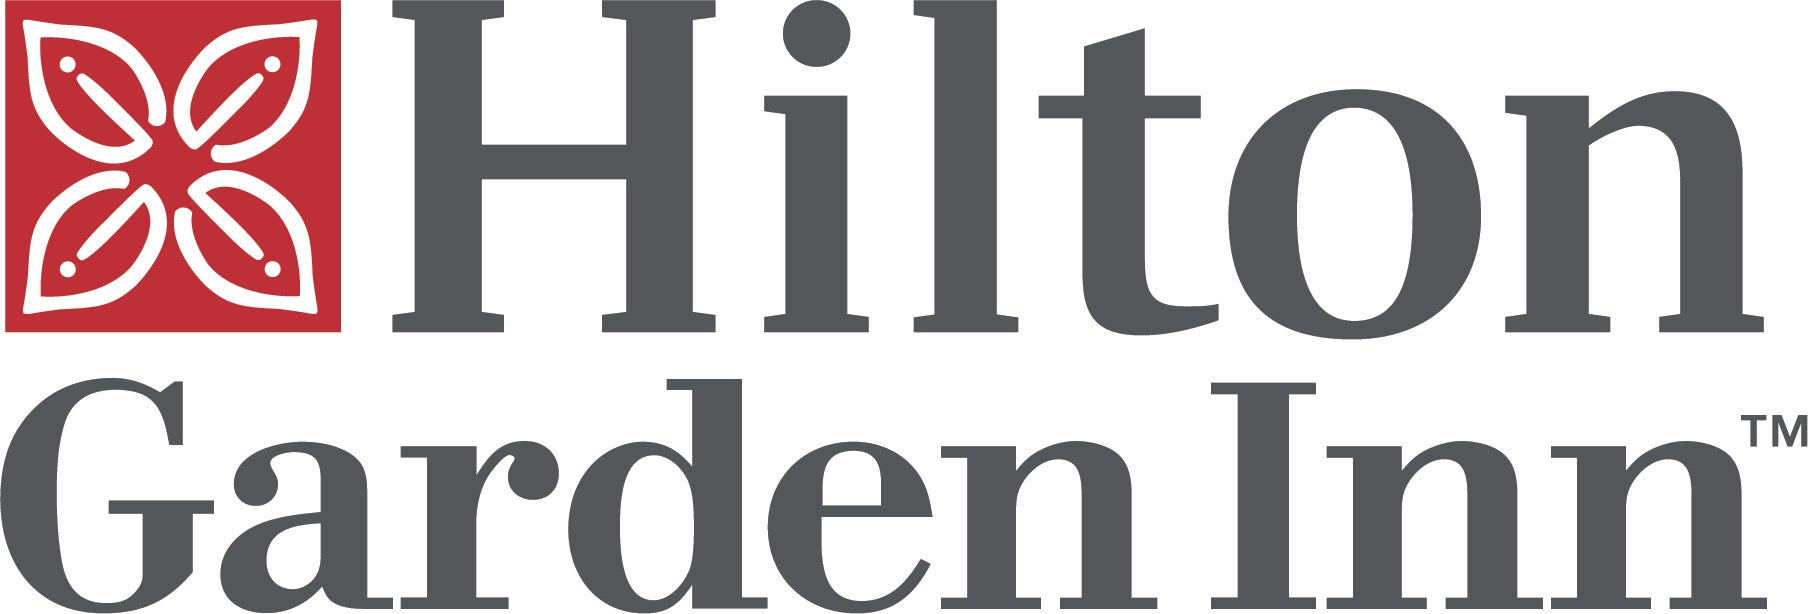 revisedhiltonlogo_FINAL.jpg